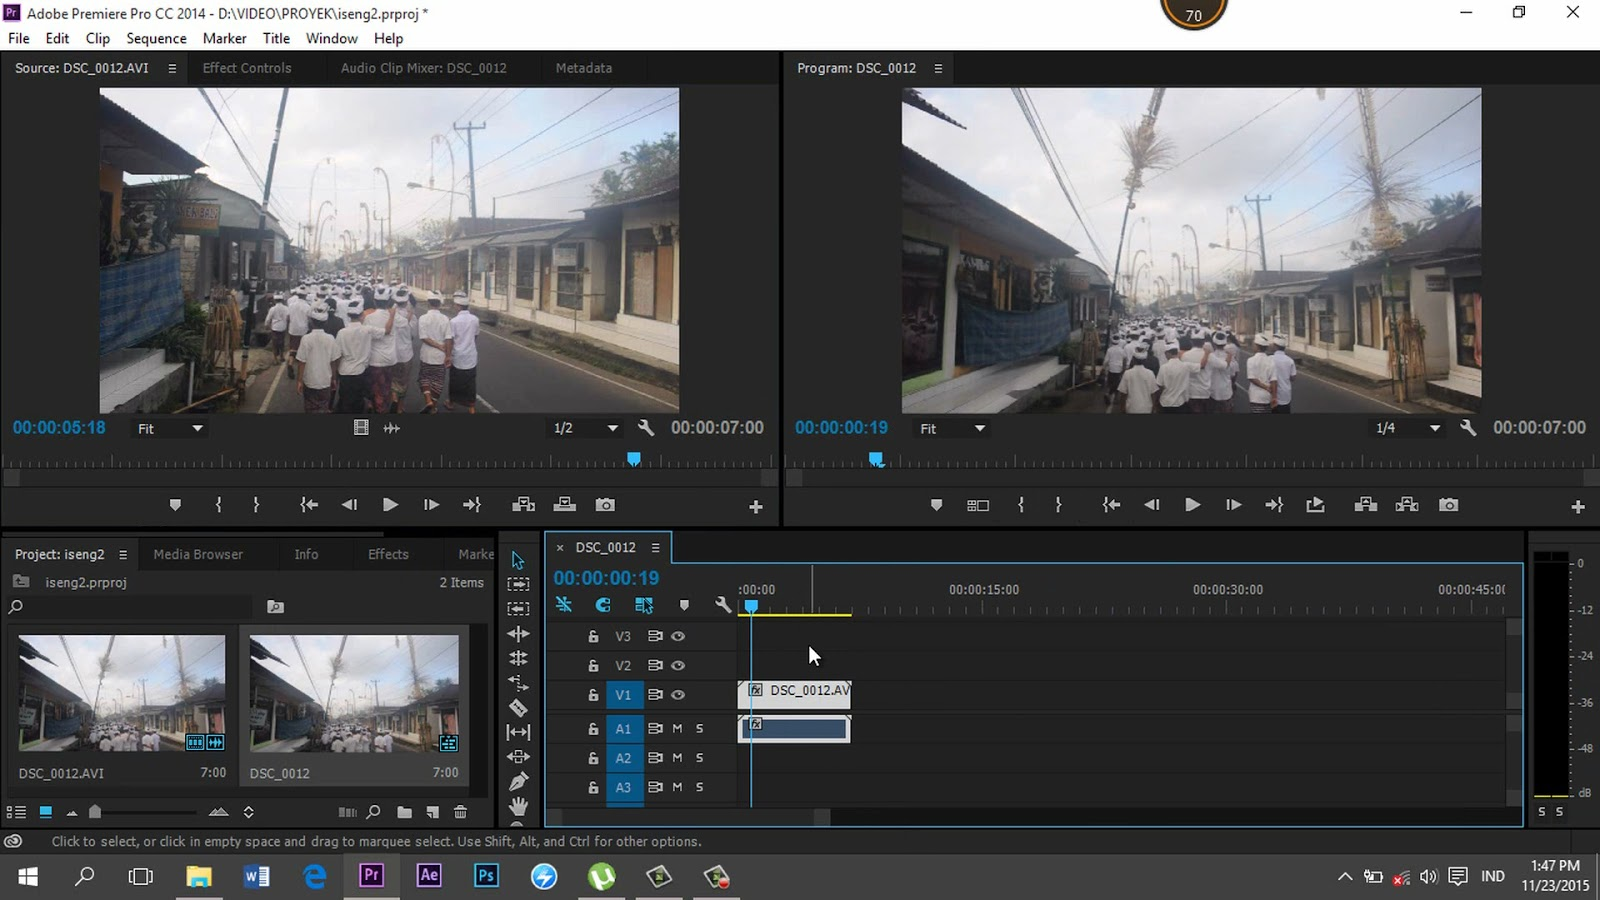 Tutorial - How to Reduce or Stabilizing Video Shaking with Adobe